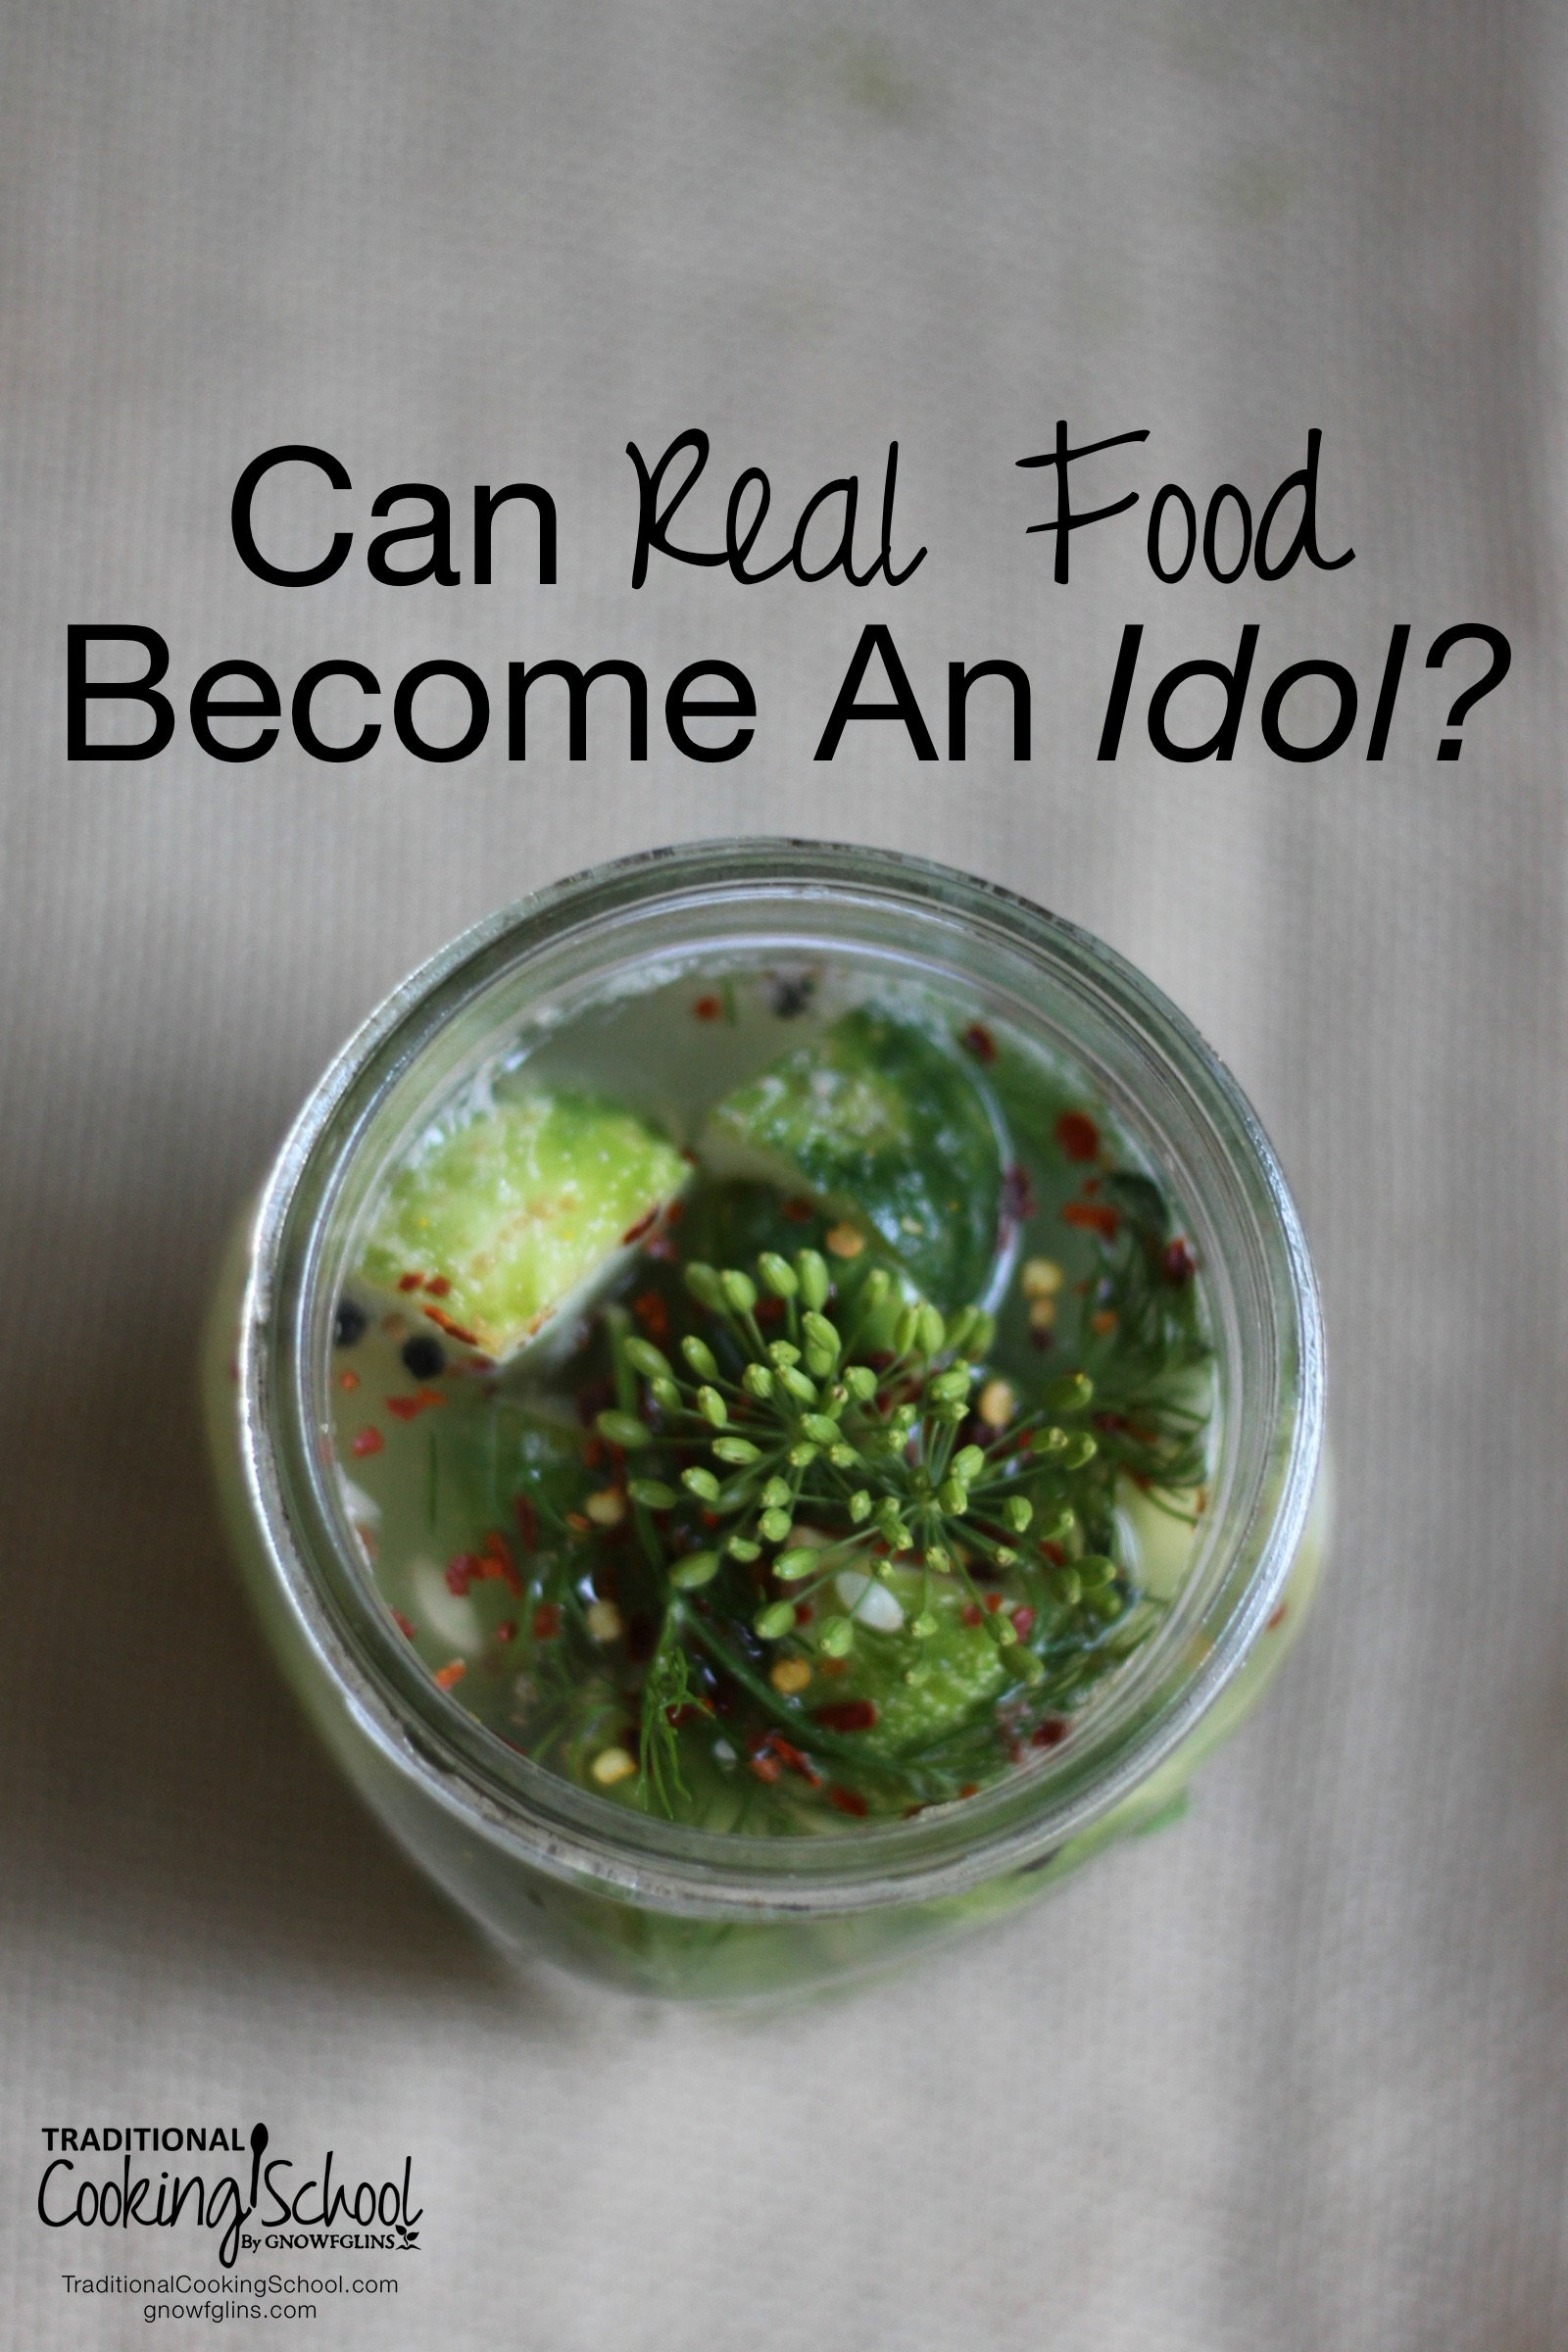 Can Real Food Become an Idol? | Have you felt overwhelmed what others say you should be doing, yet you have trouble managing it all? Keeping up can be discouraging and depressing. Yet, real food is not God and we should take care not to obsess over it to the point we put it on a pedestal. Instead...| TraditionalCookingSchool.com